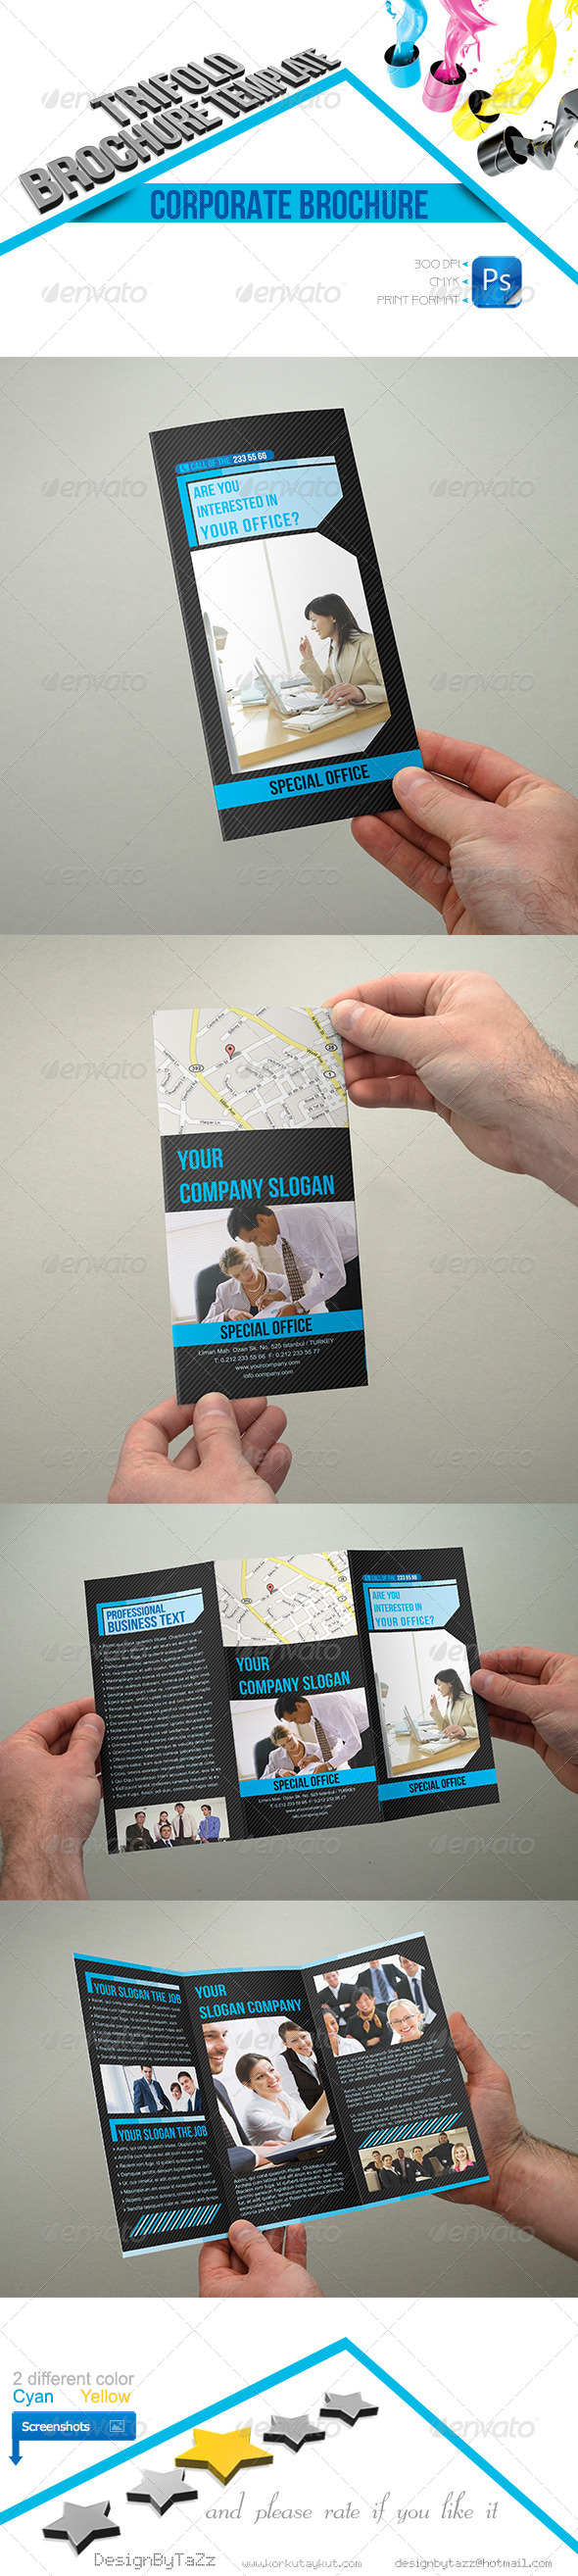 GraphicRiver Corporate Business Trifold Template 4386208